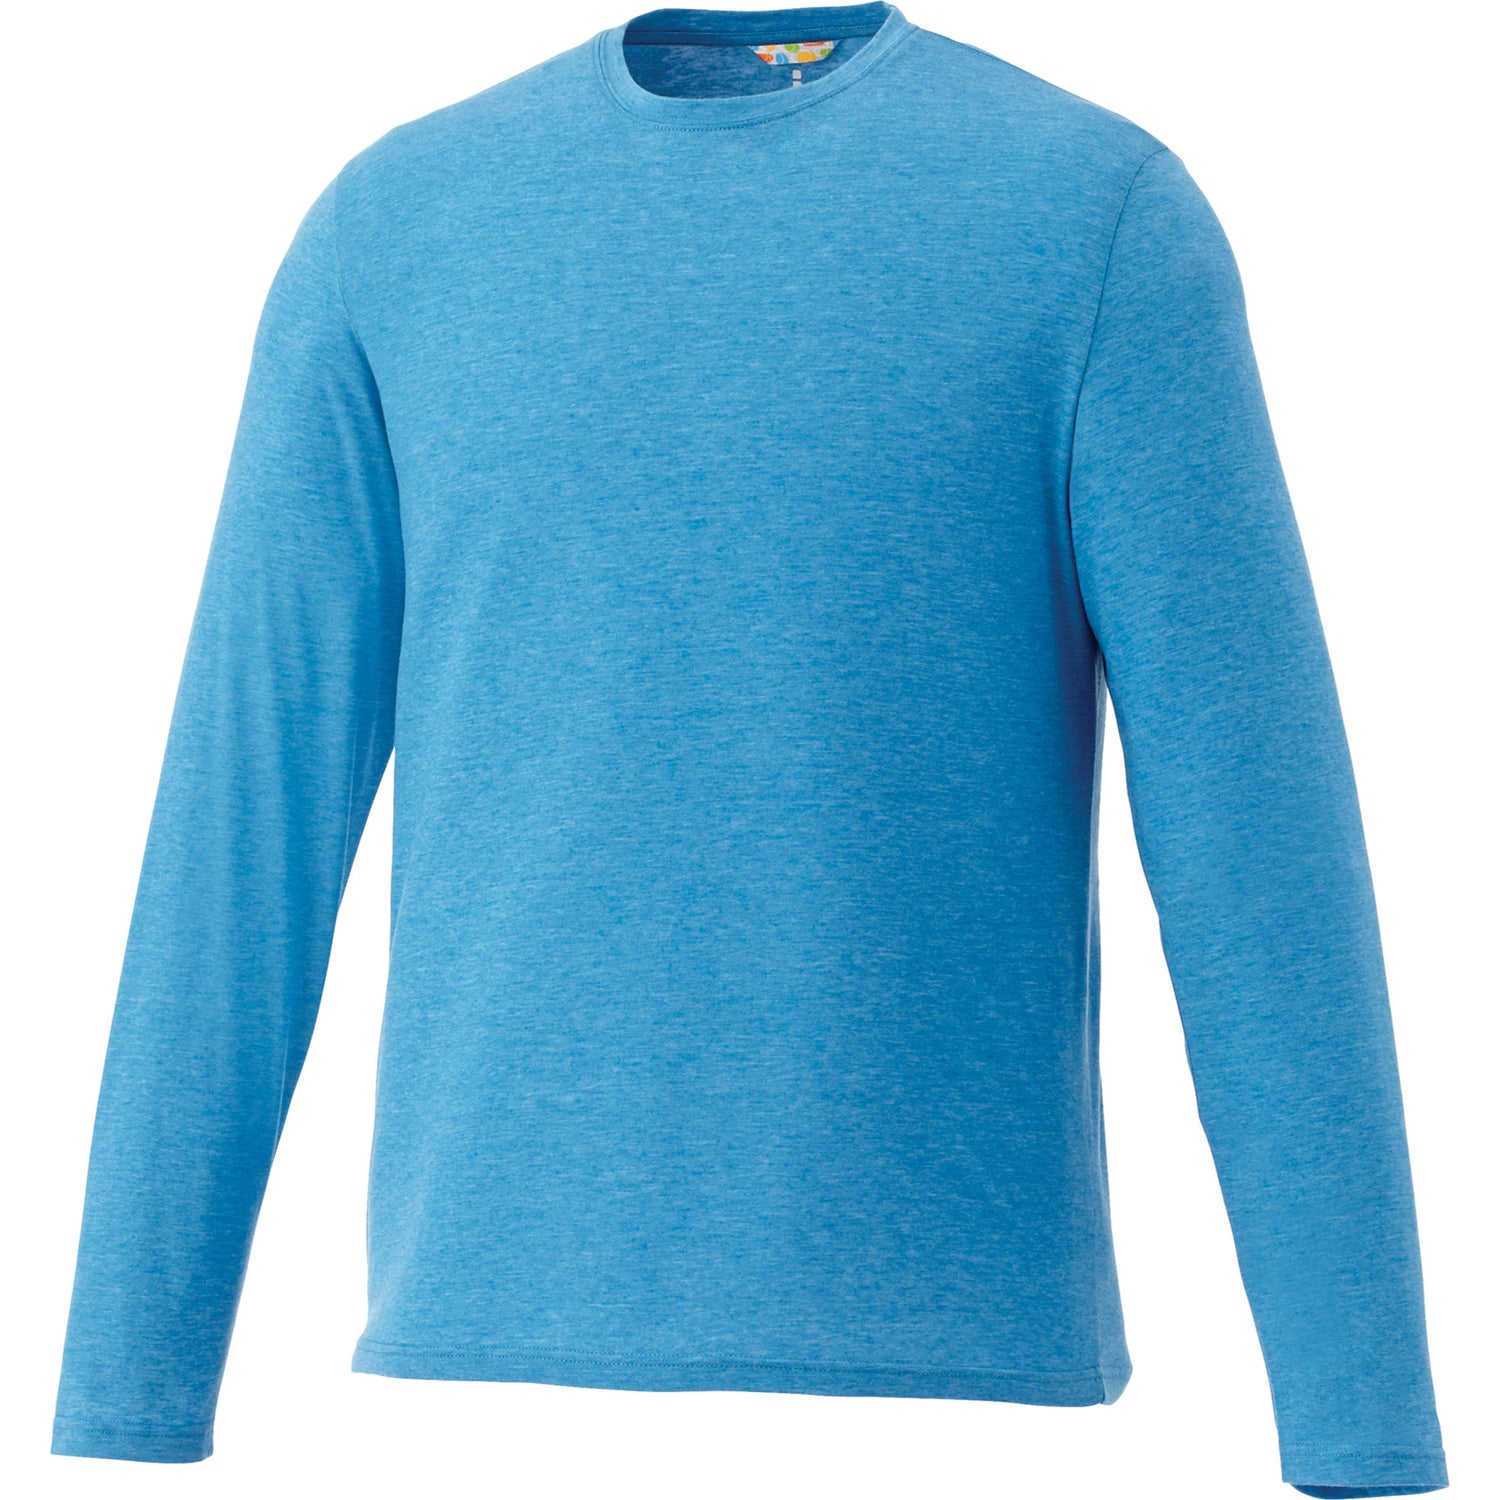 Holt long sleeve tee shirt by trimark men 39 s long for Personalized long sleeve t shirts